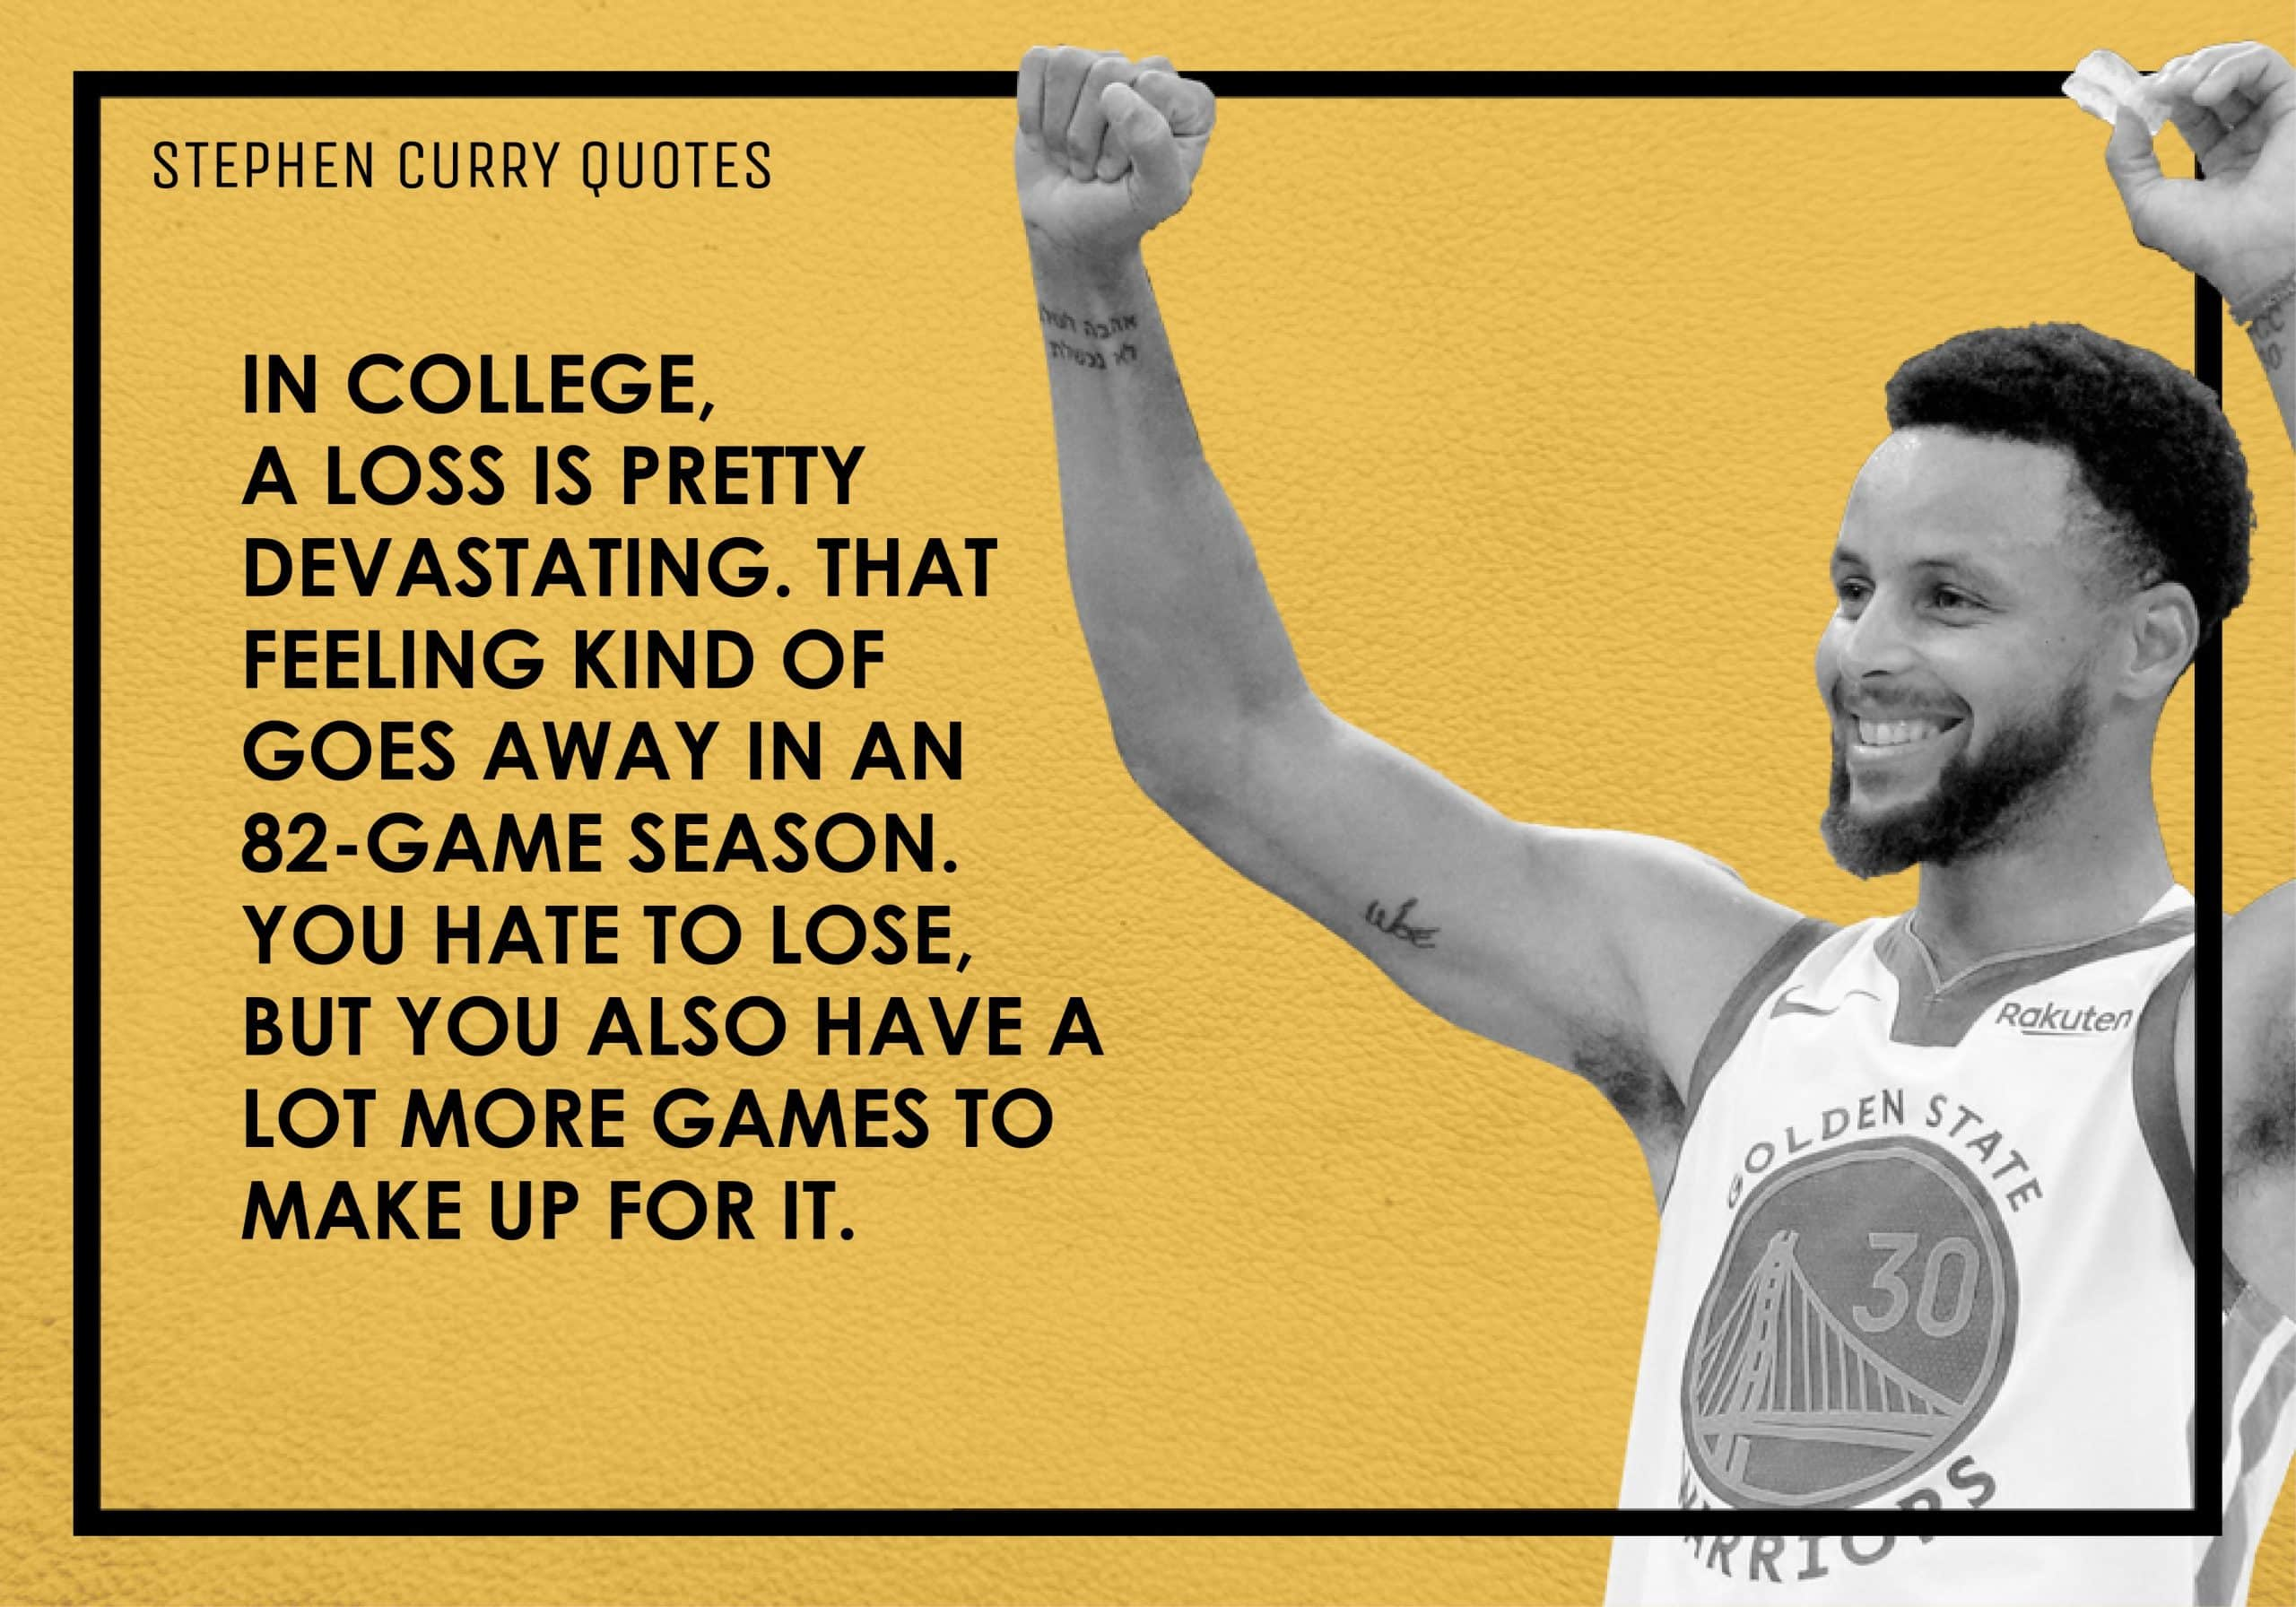 Stephen Curry Quotes (13)